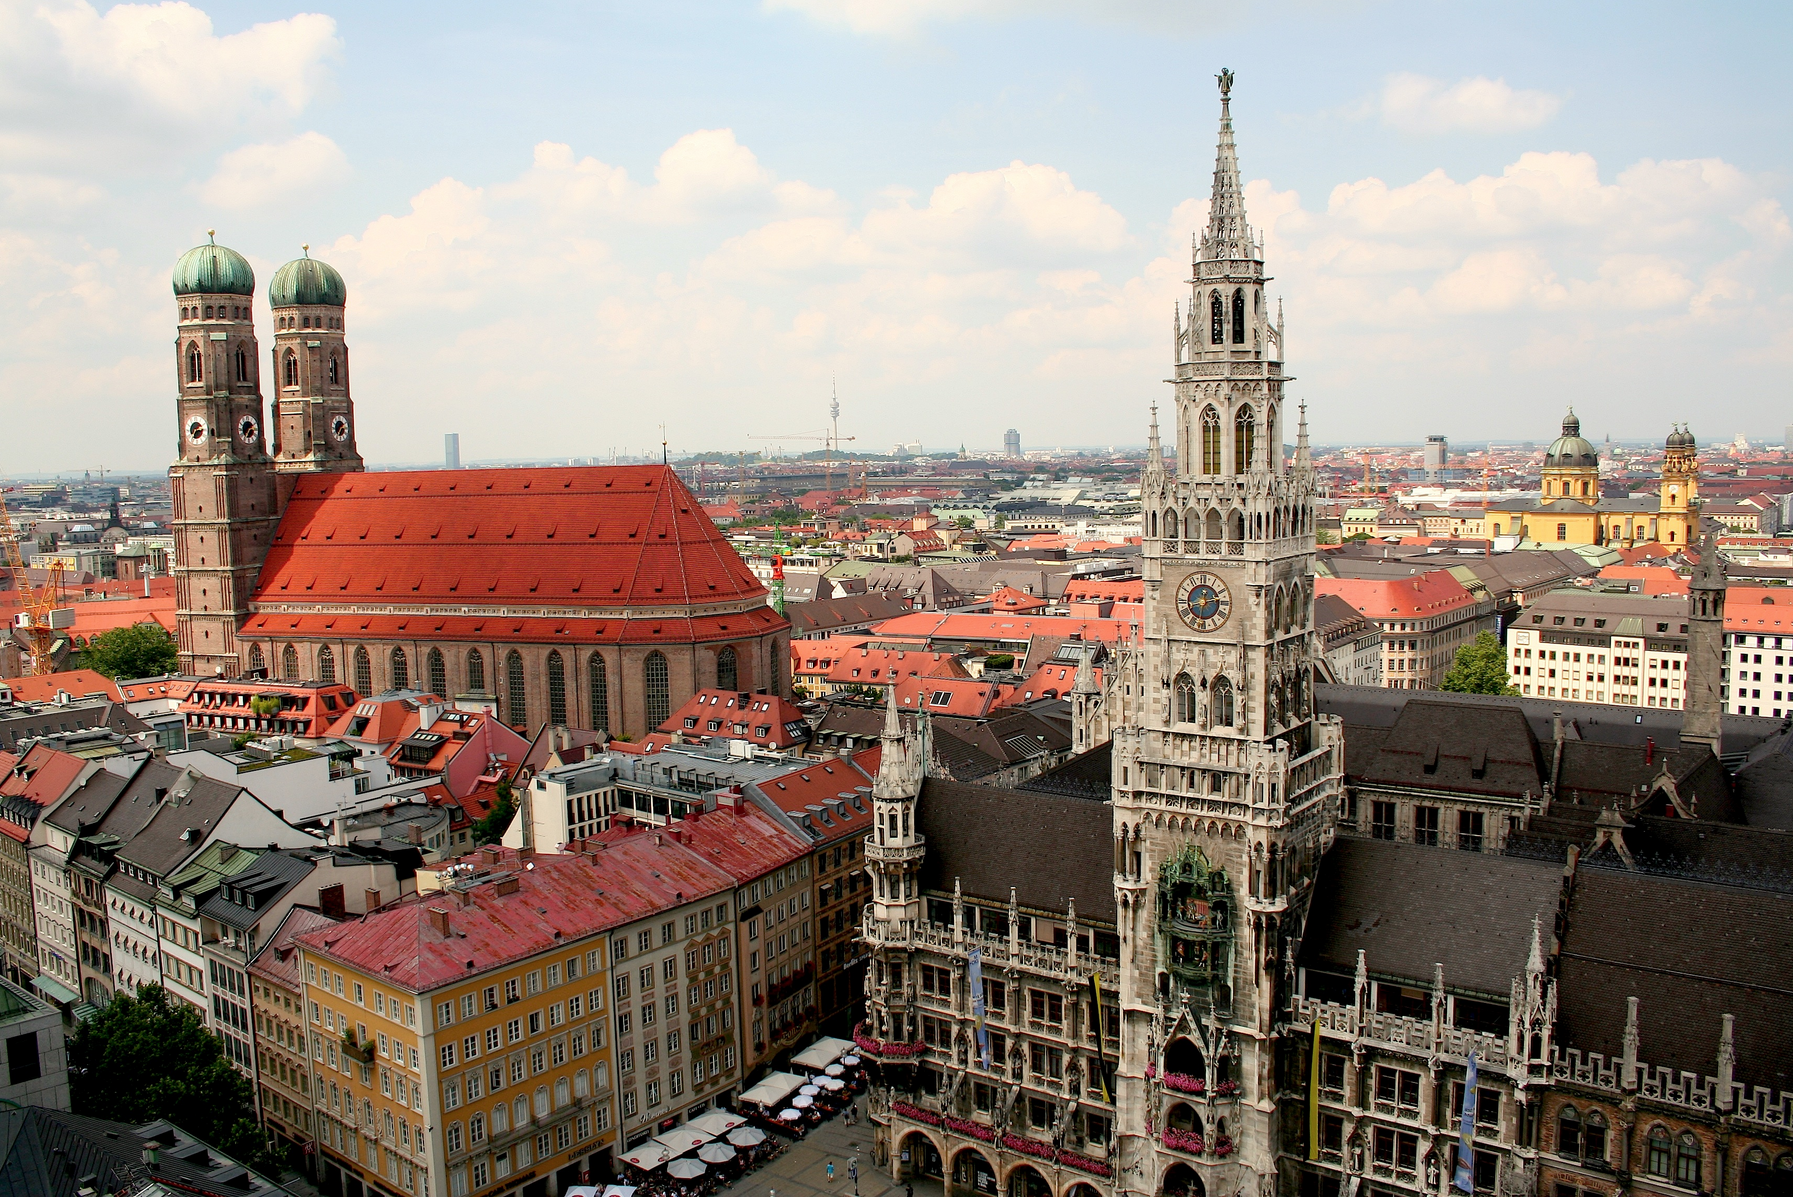 Munich Skyline at Marienplatz